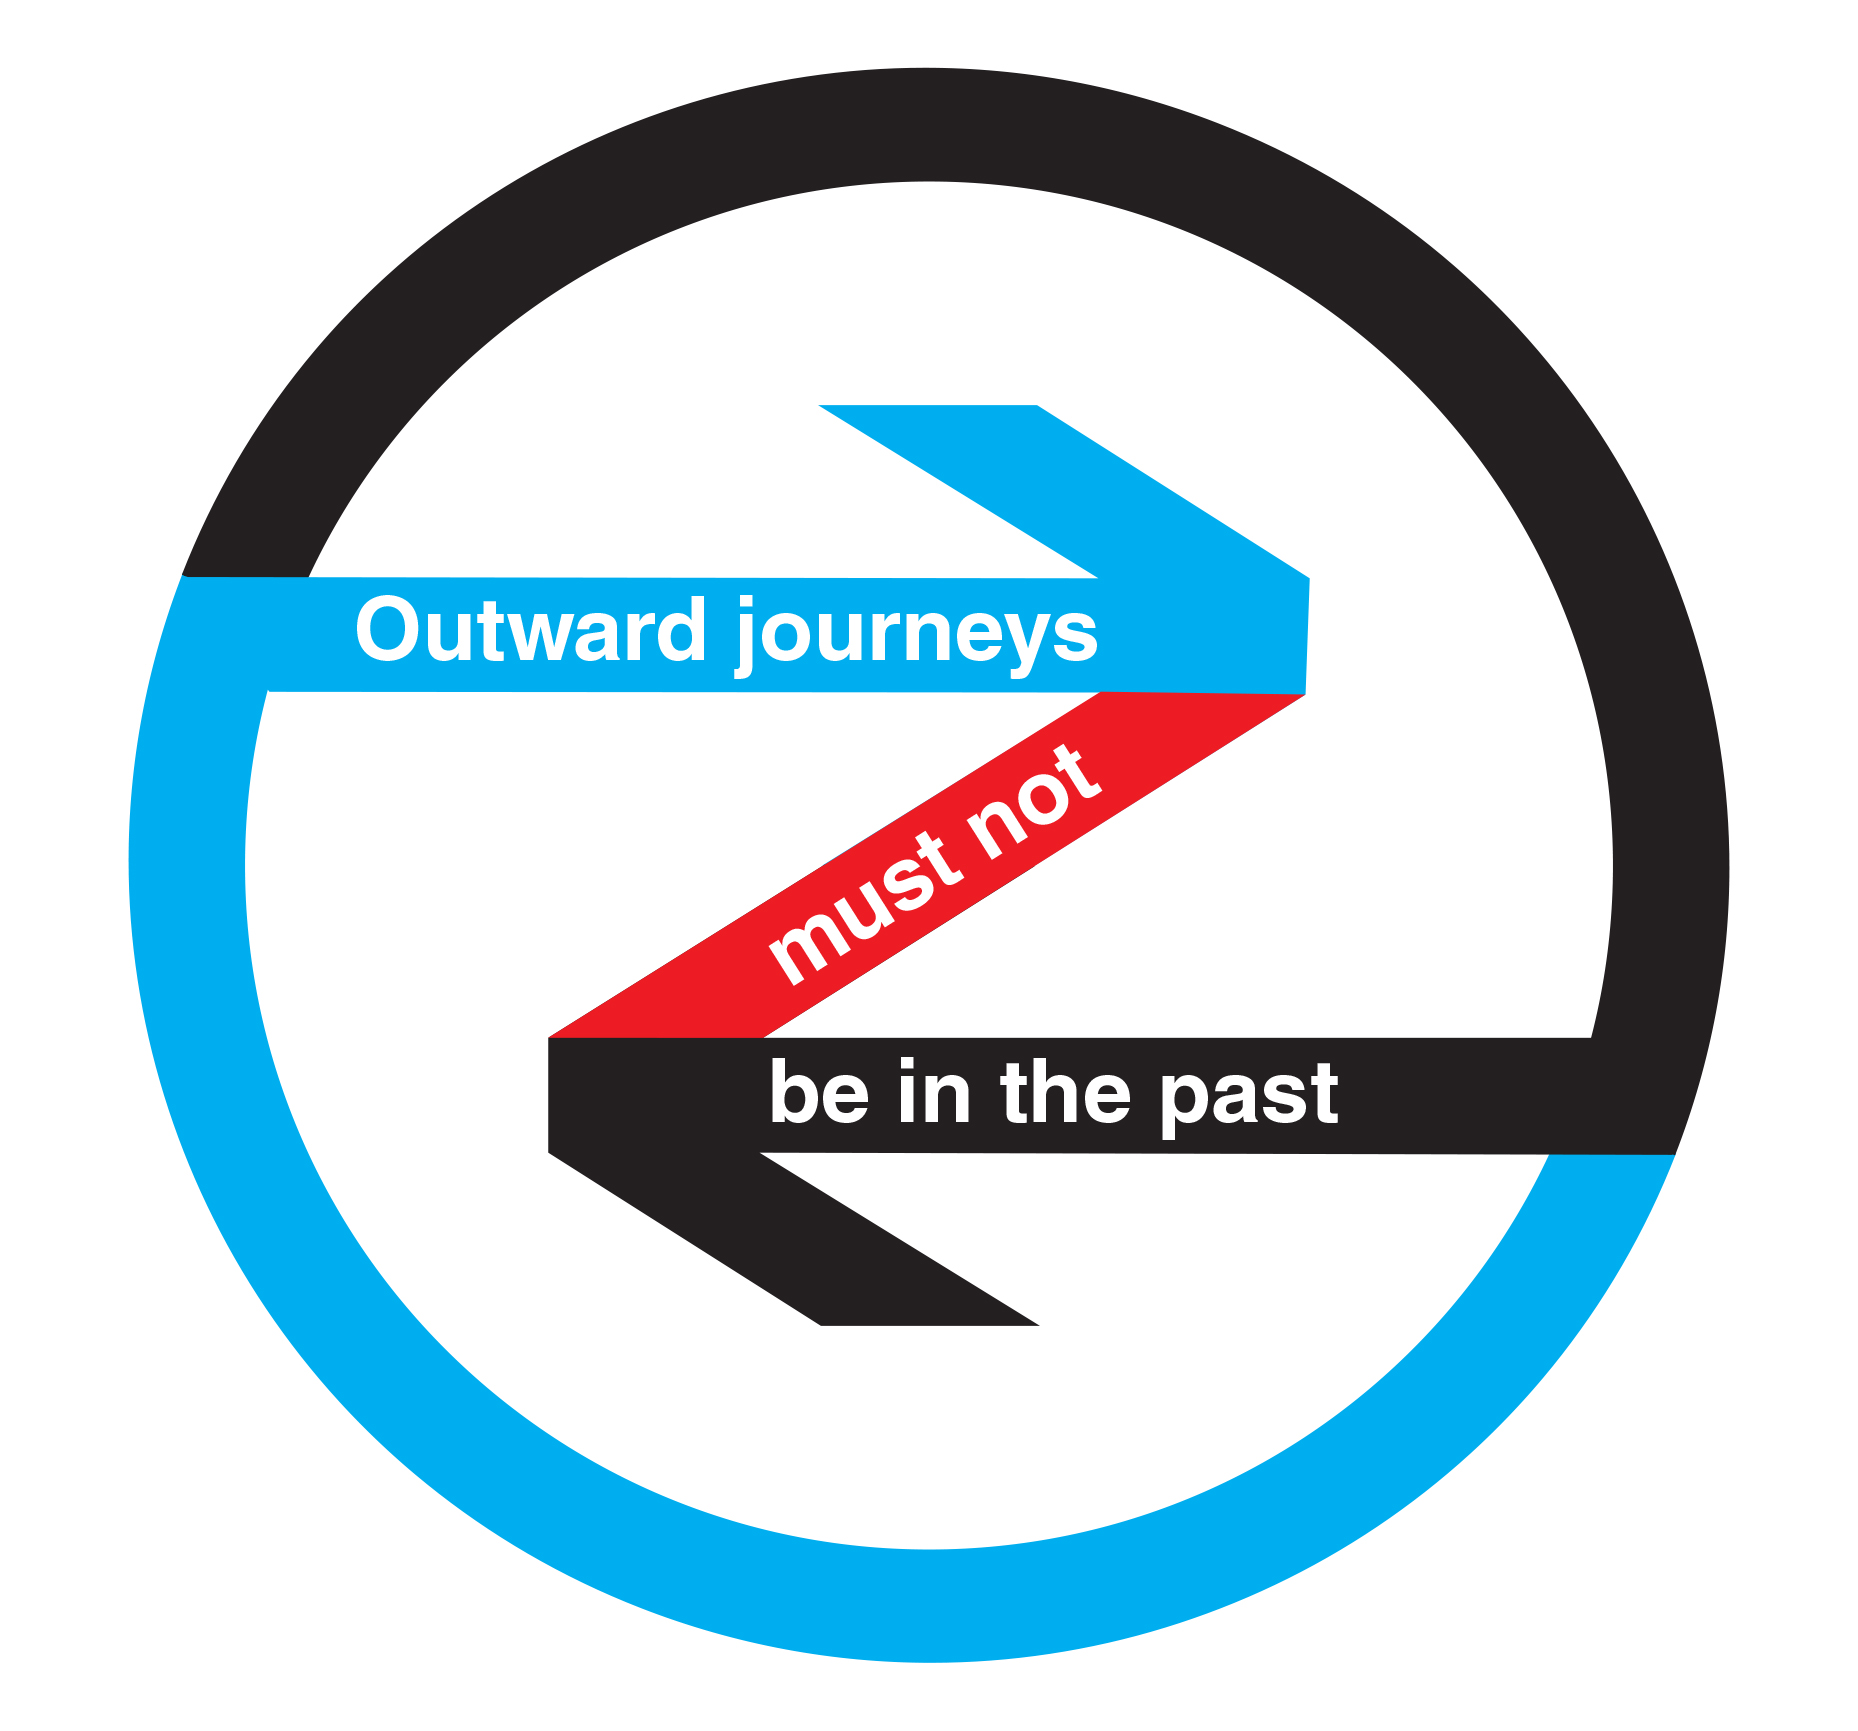 Outward journeys must not be in the past